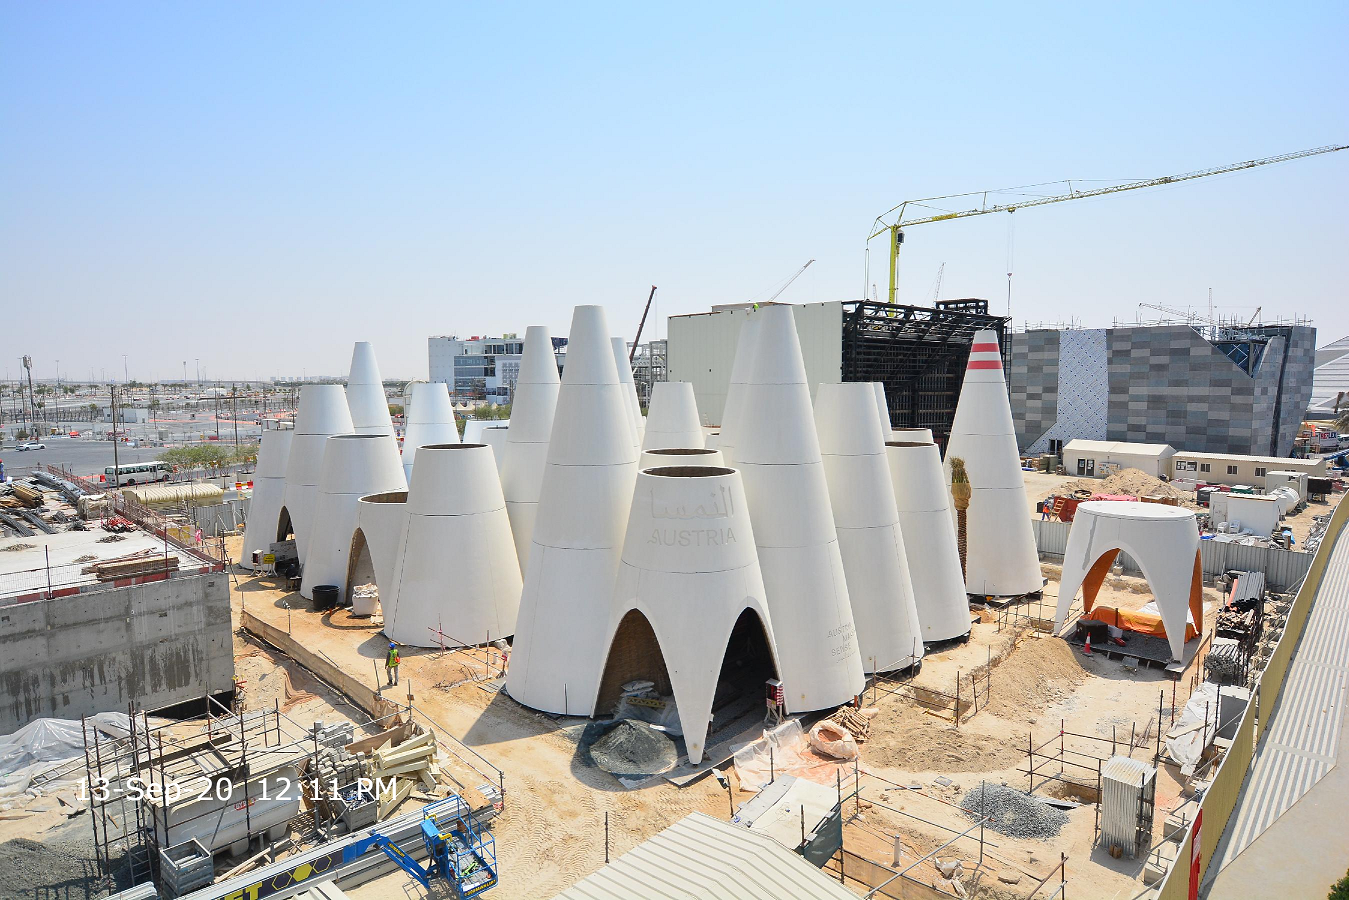 External construction for Austria Pavilion at Expo 2020 complete